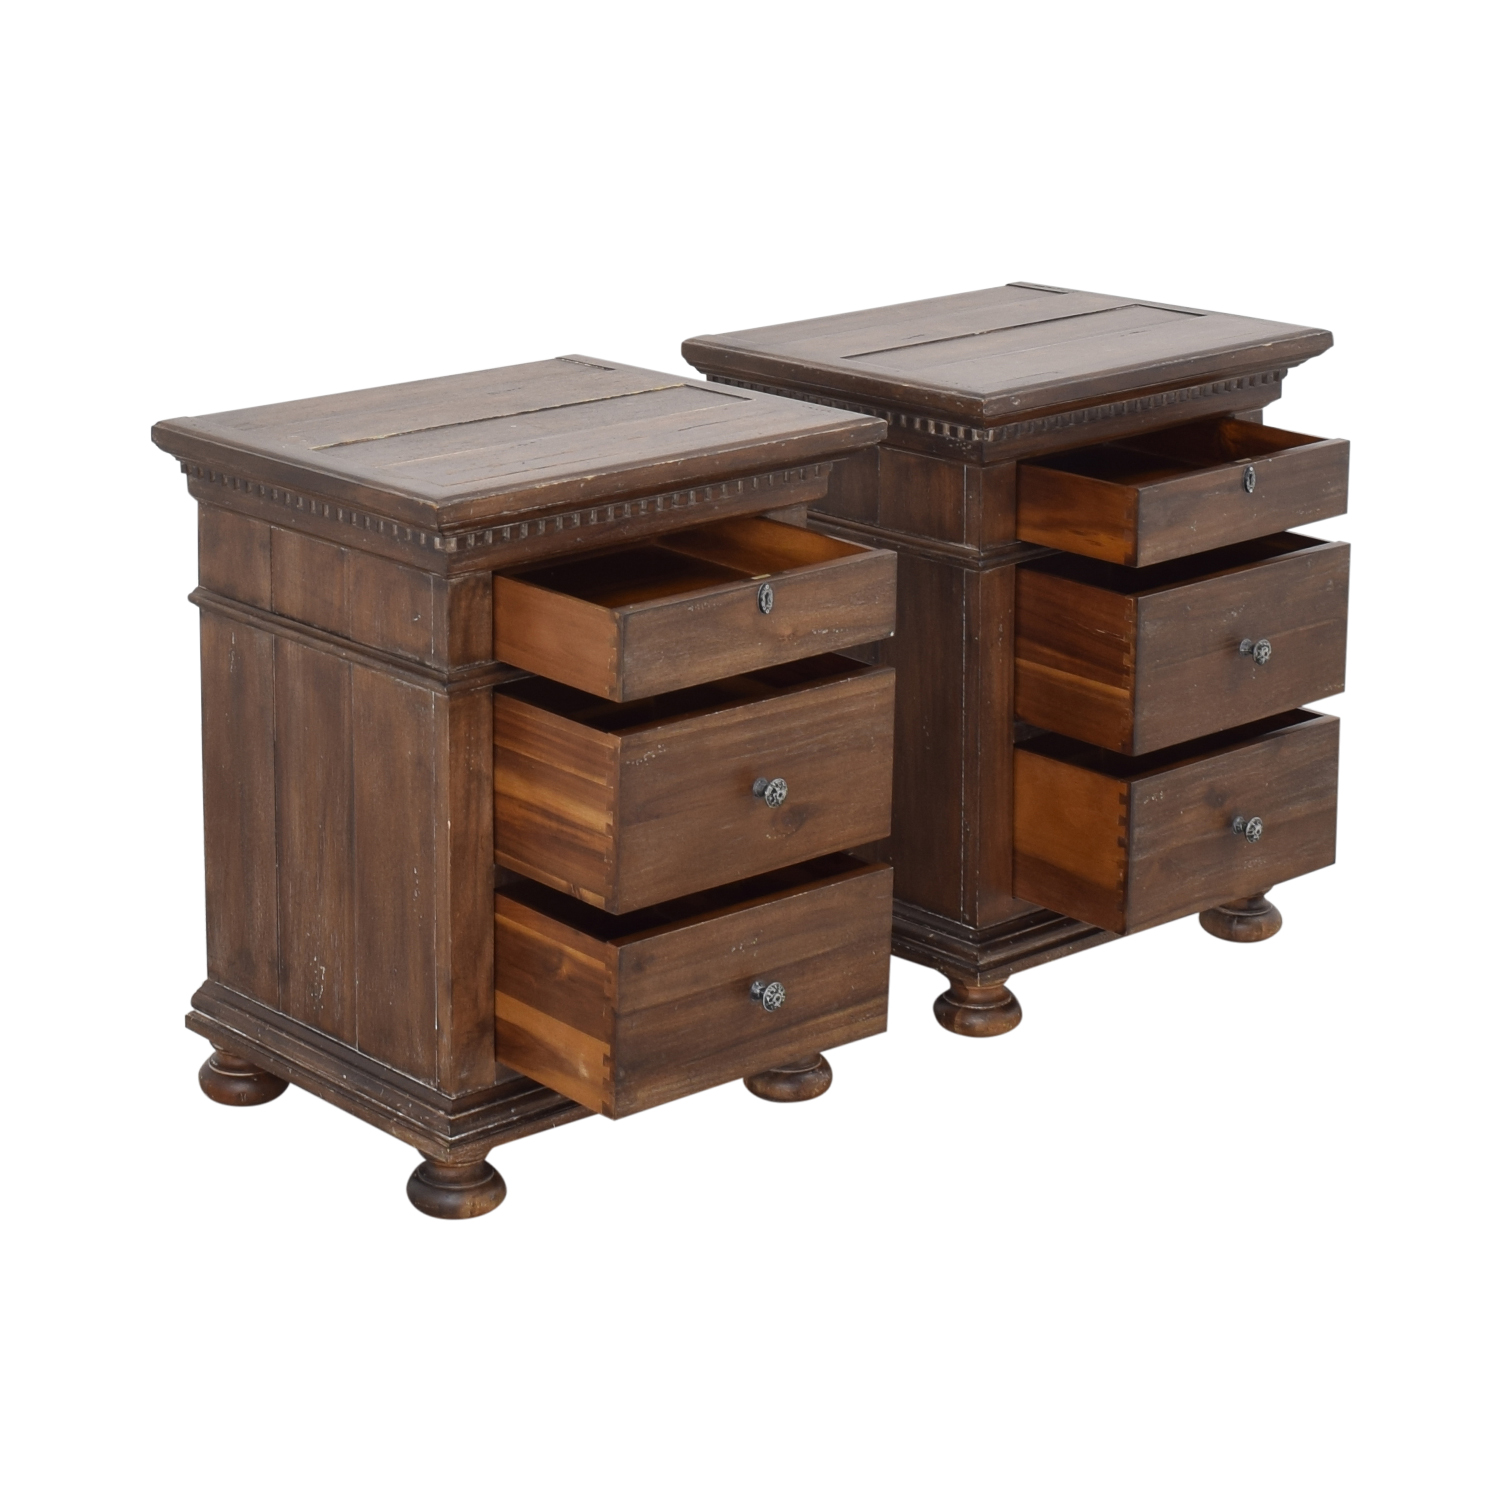 Restoration Hardware Restoration Hardware Saint James Closed Nightstands ma